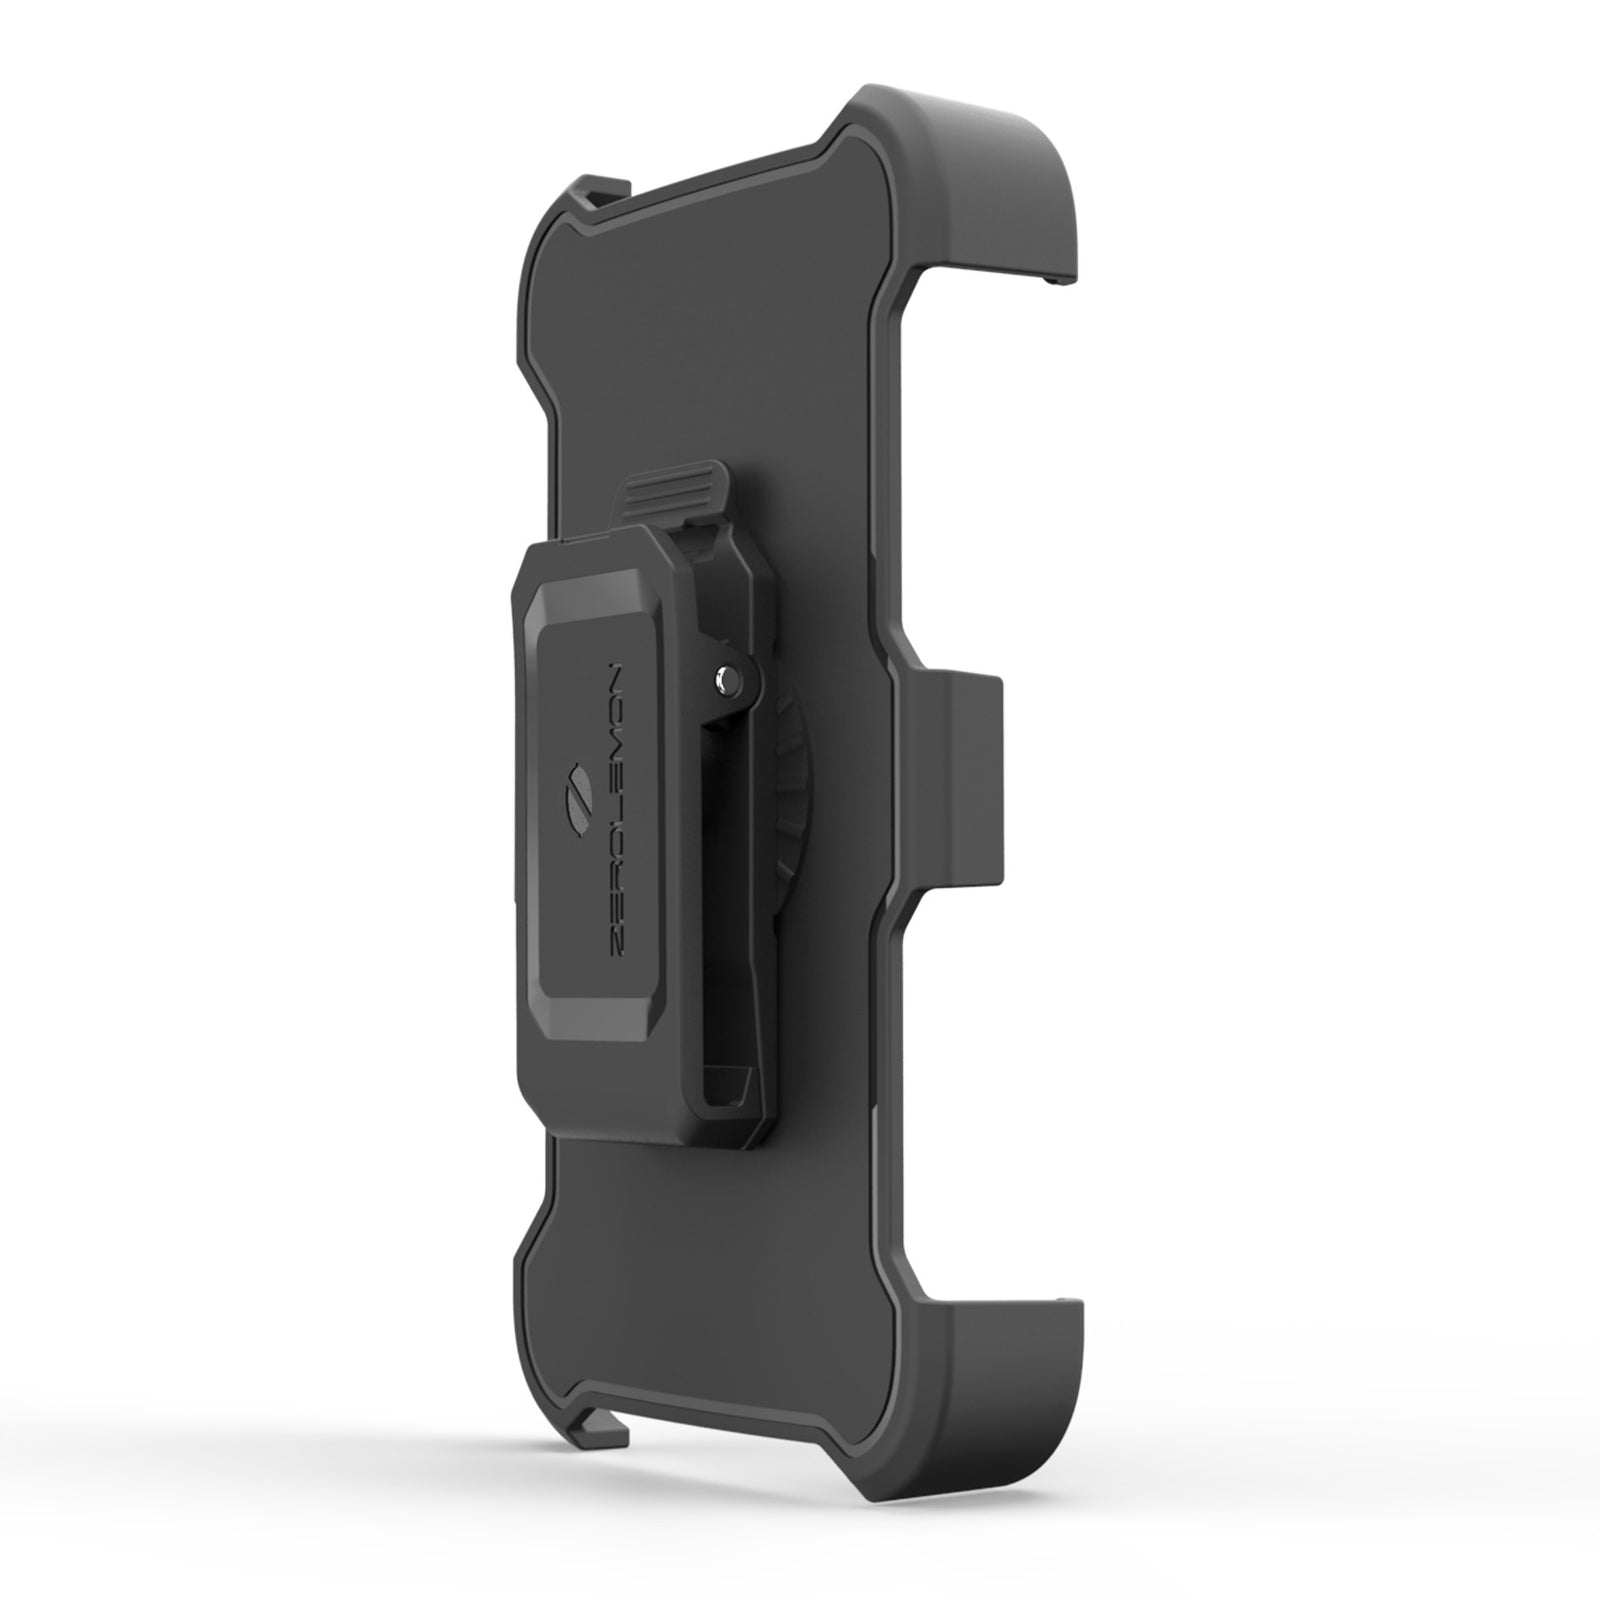 Galaxy S7 Belt Clip Holster for ZeroLemon 7500mAh Battery Case